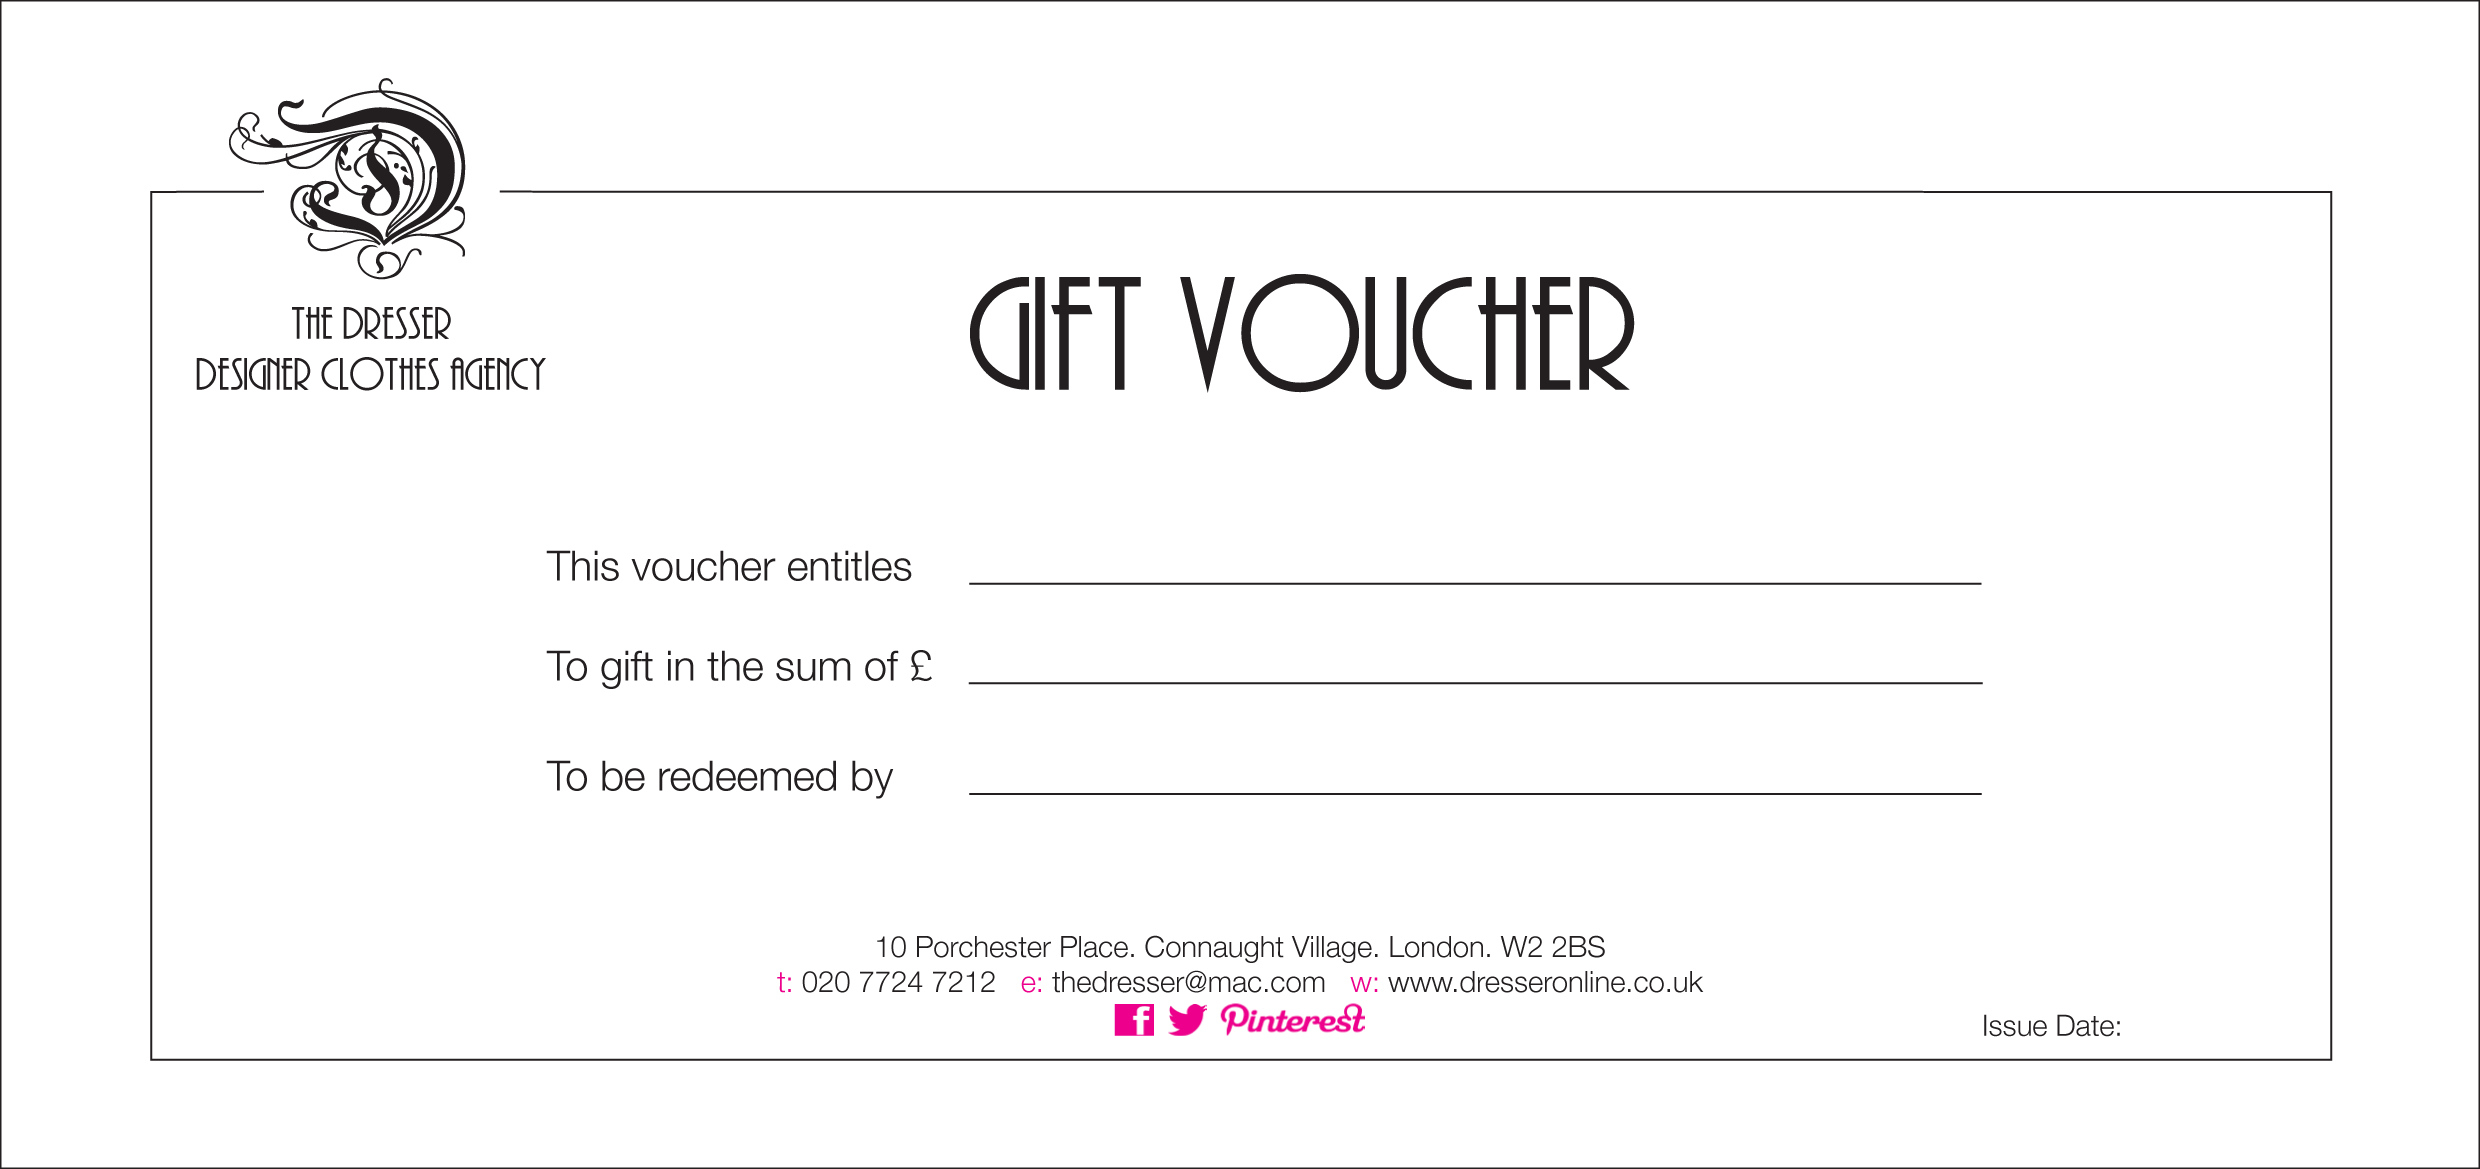 Gift Voucher Template Word Free Download  Printable within Certificate Of Cooking 7 Template Choices Free